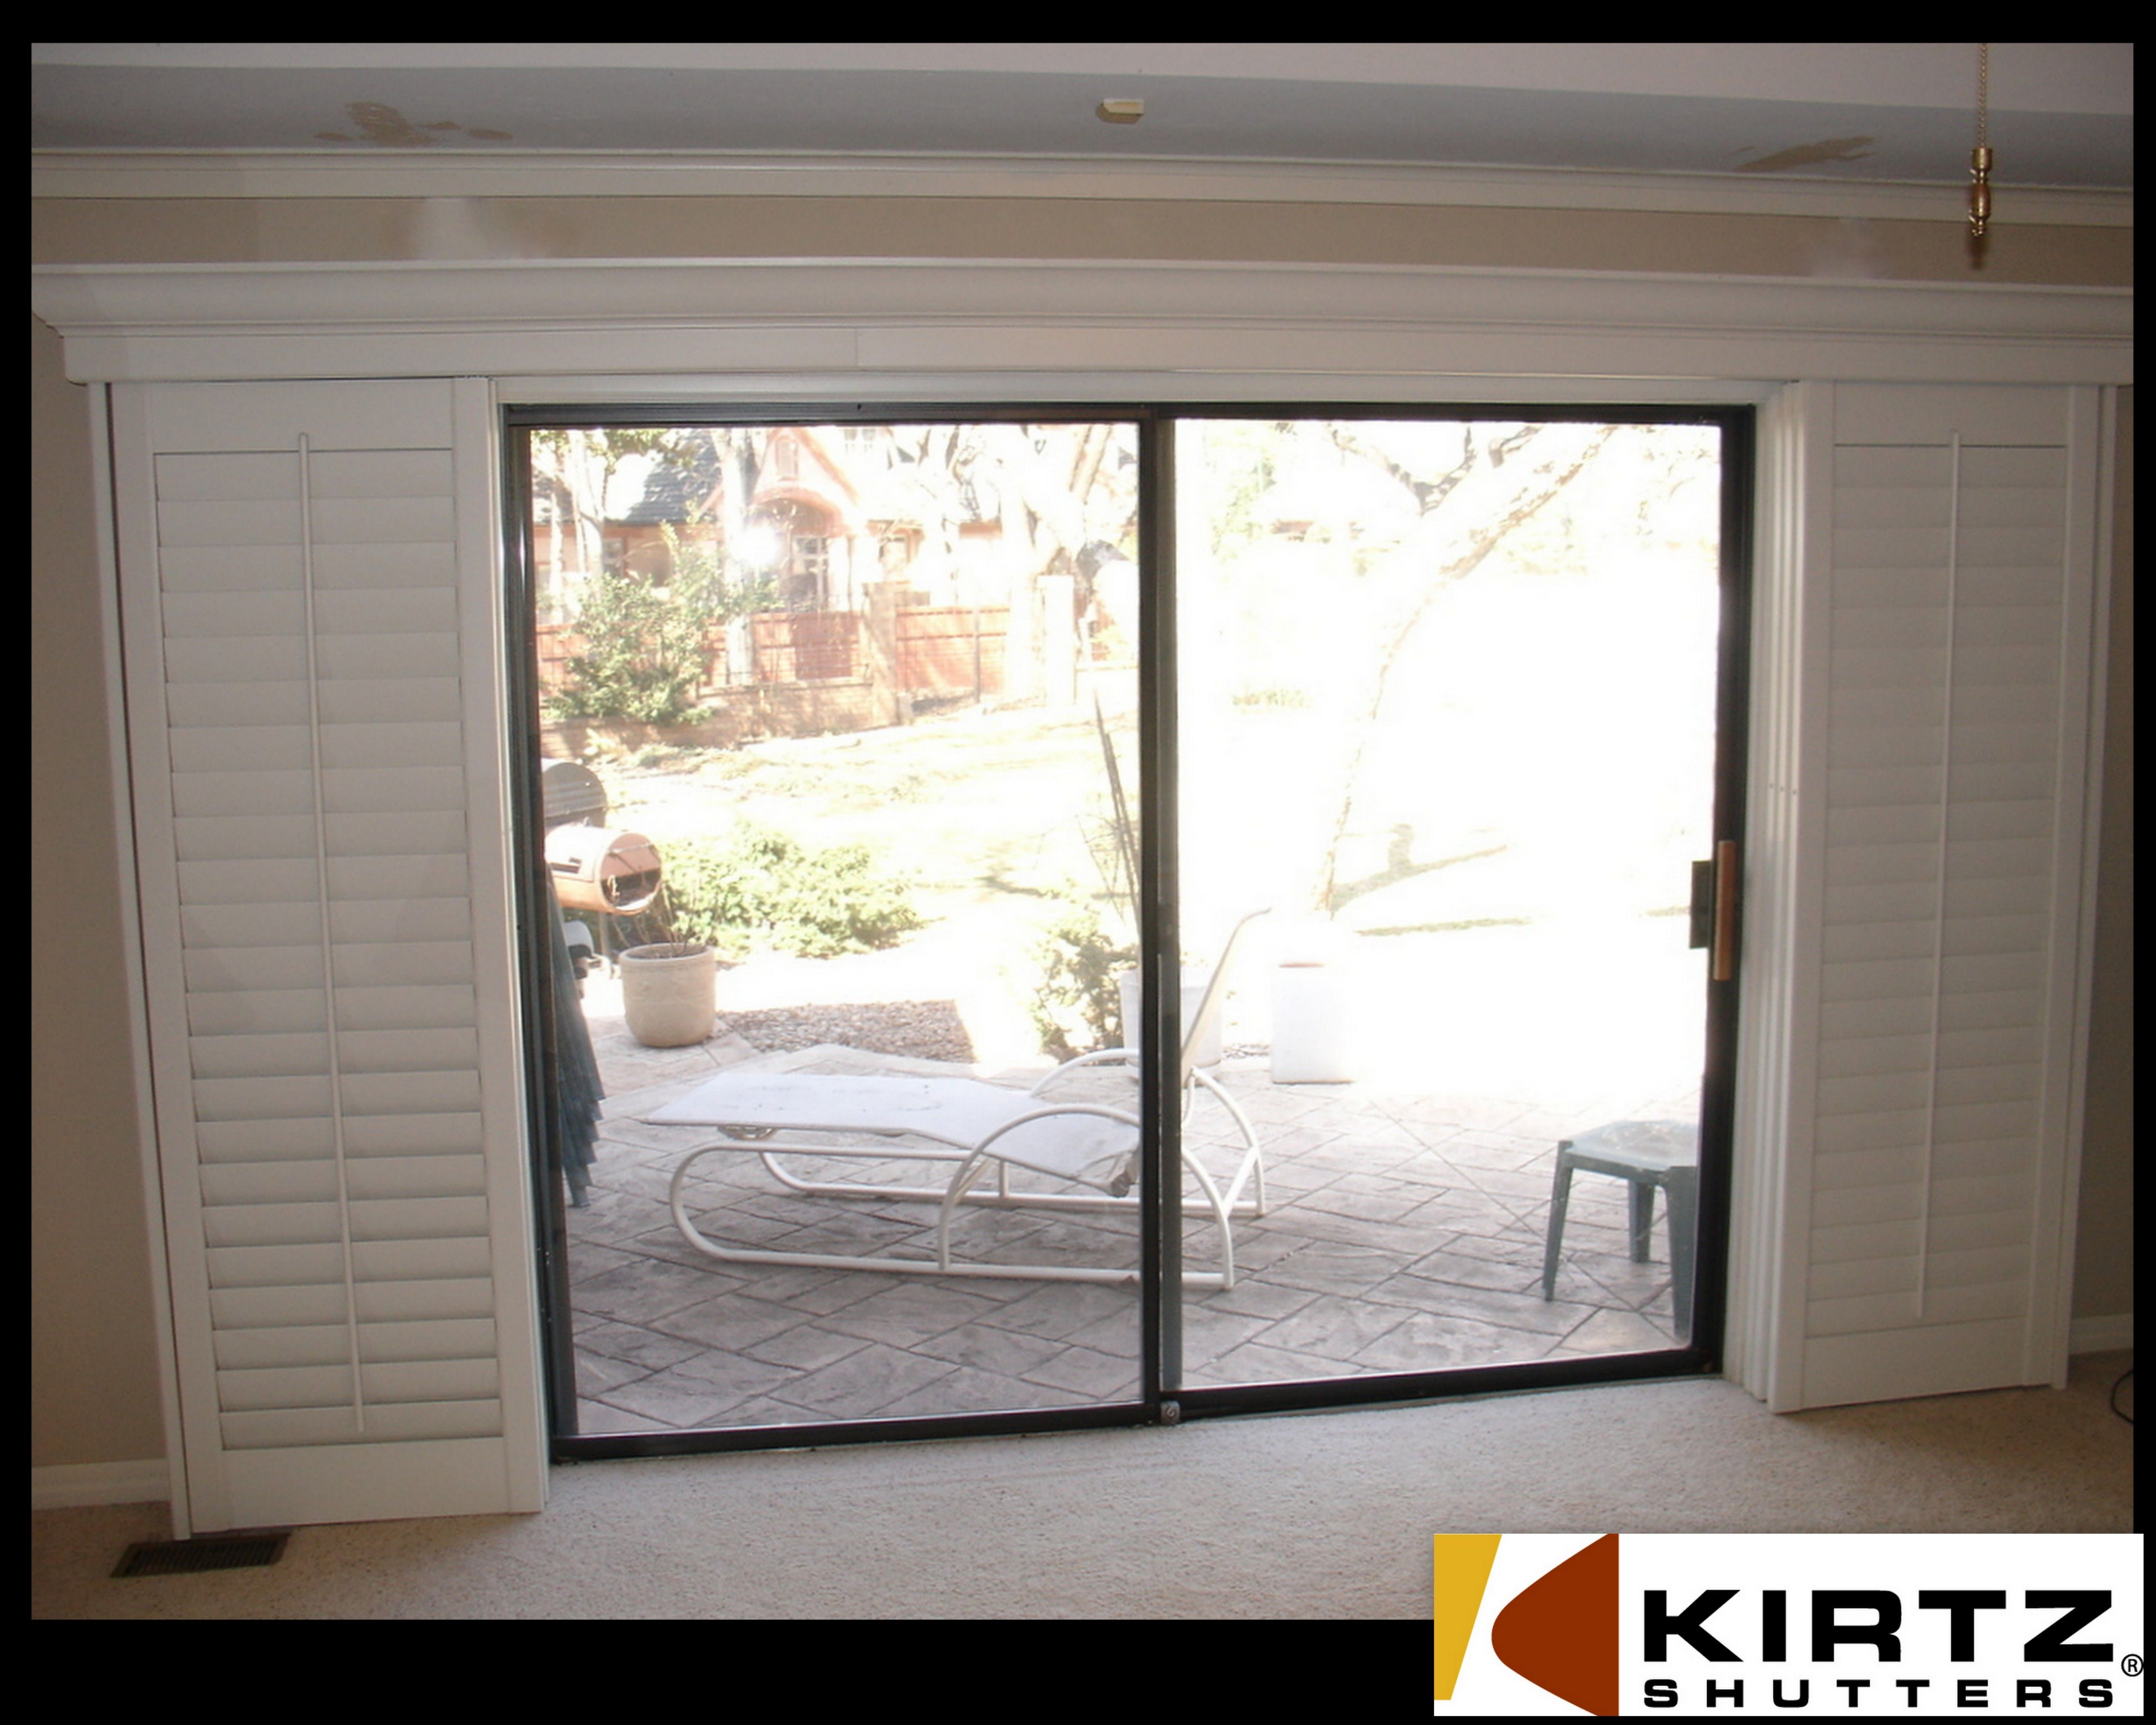 ikea coverings blinds interior track curtains horizontal window doors shades size french shutters with sliding depot door between of for glass full patio treatments home